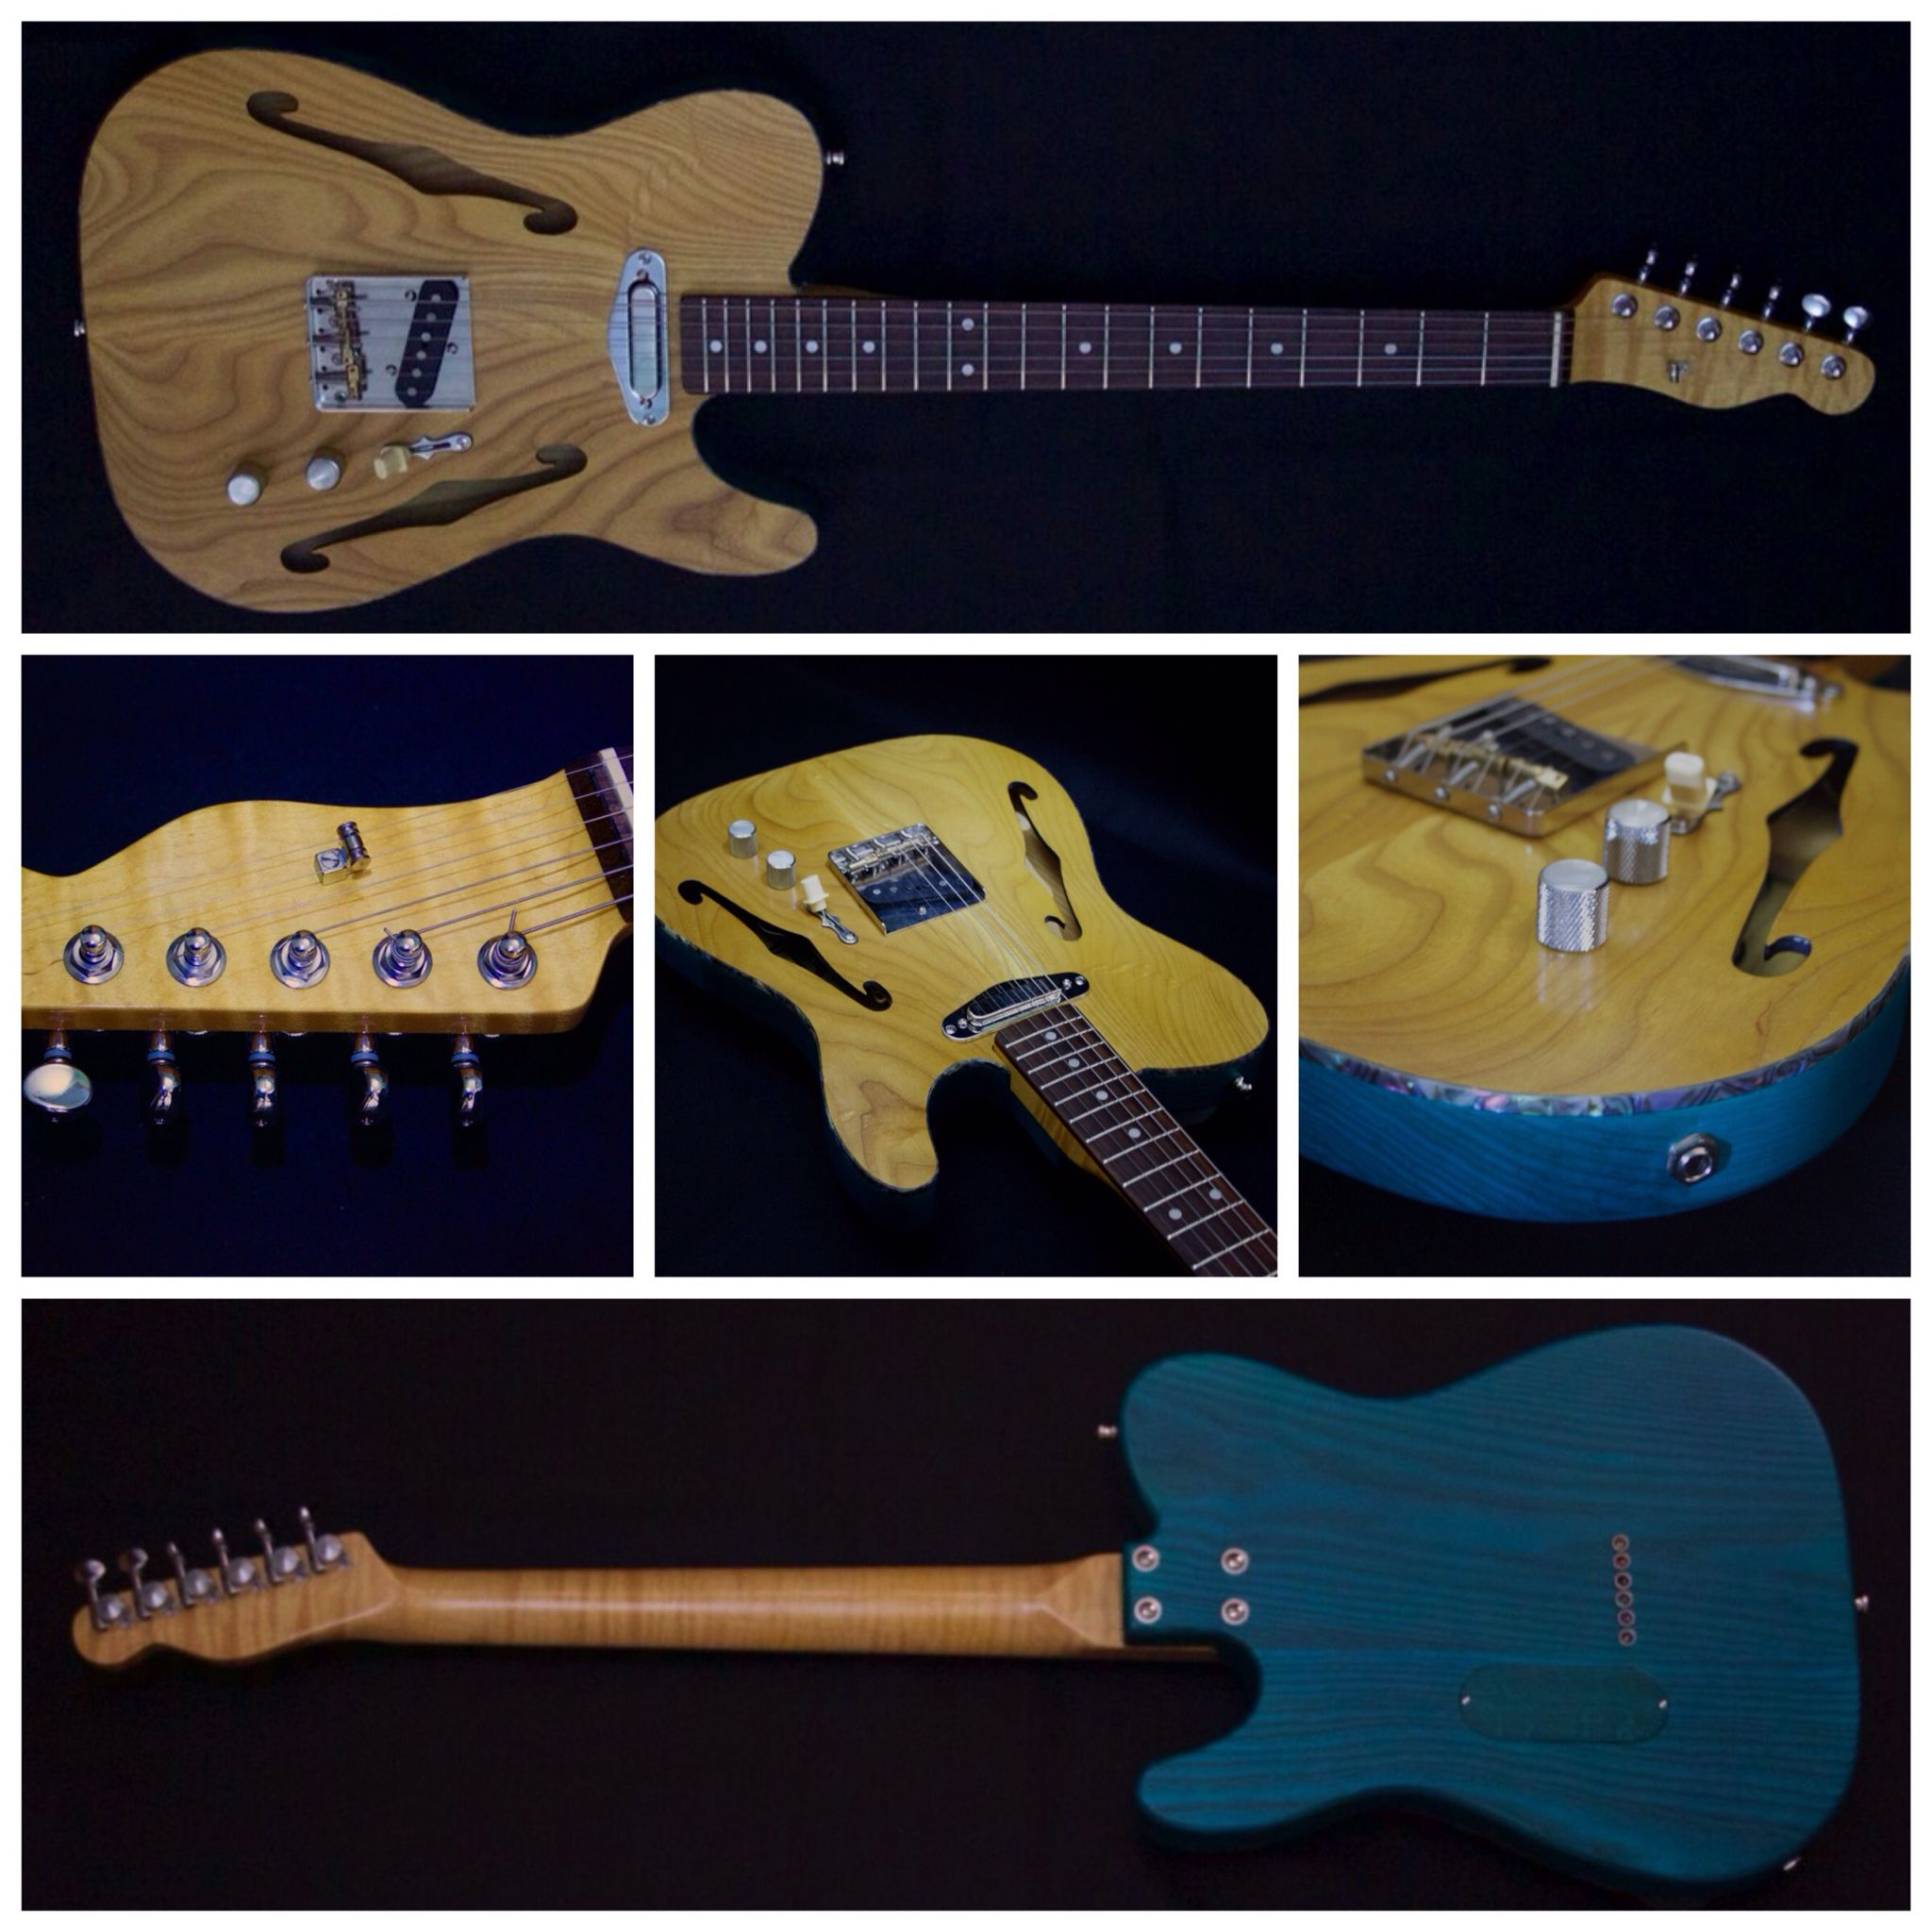 Nocaster Bare Knuckle Pickups Guitars Handcrafted Loxtone Beautiful Guitars Handcraft Telecaster